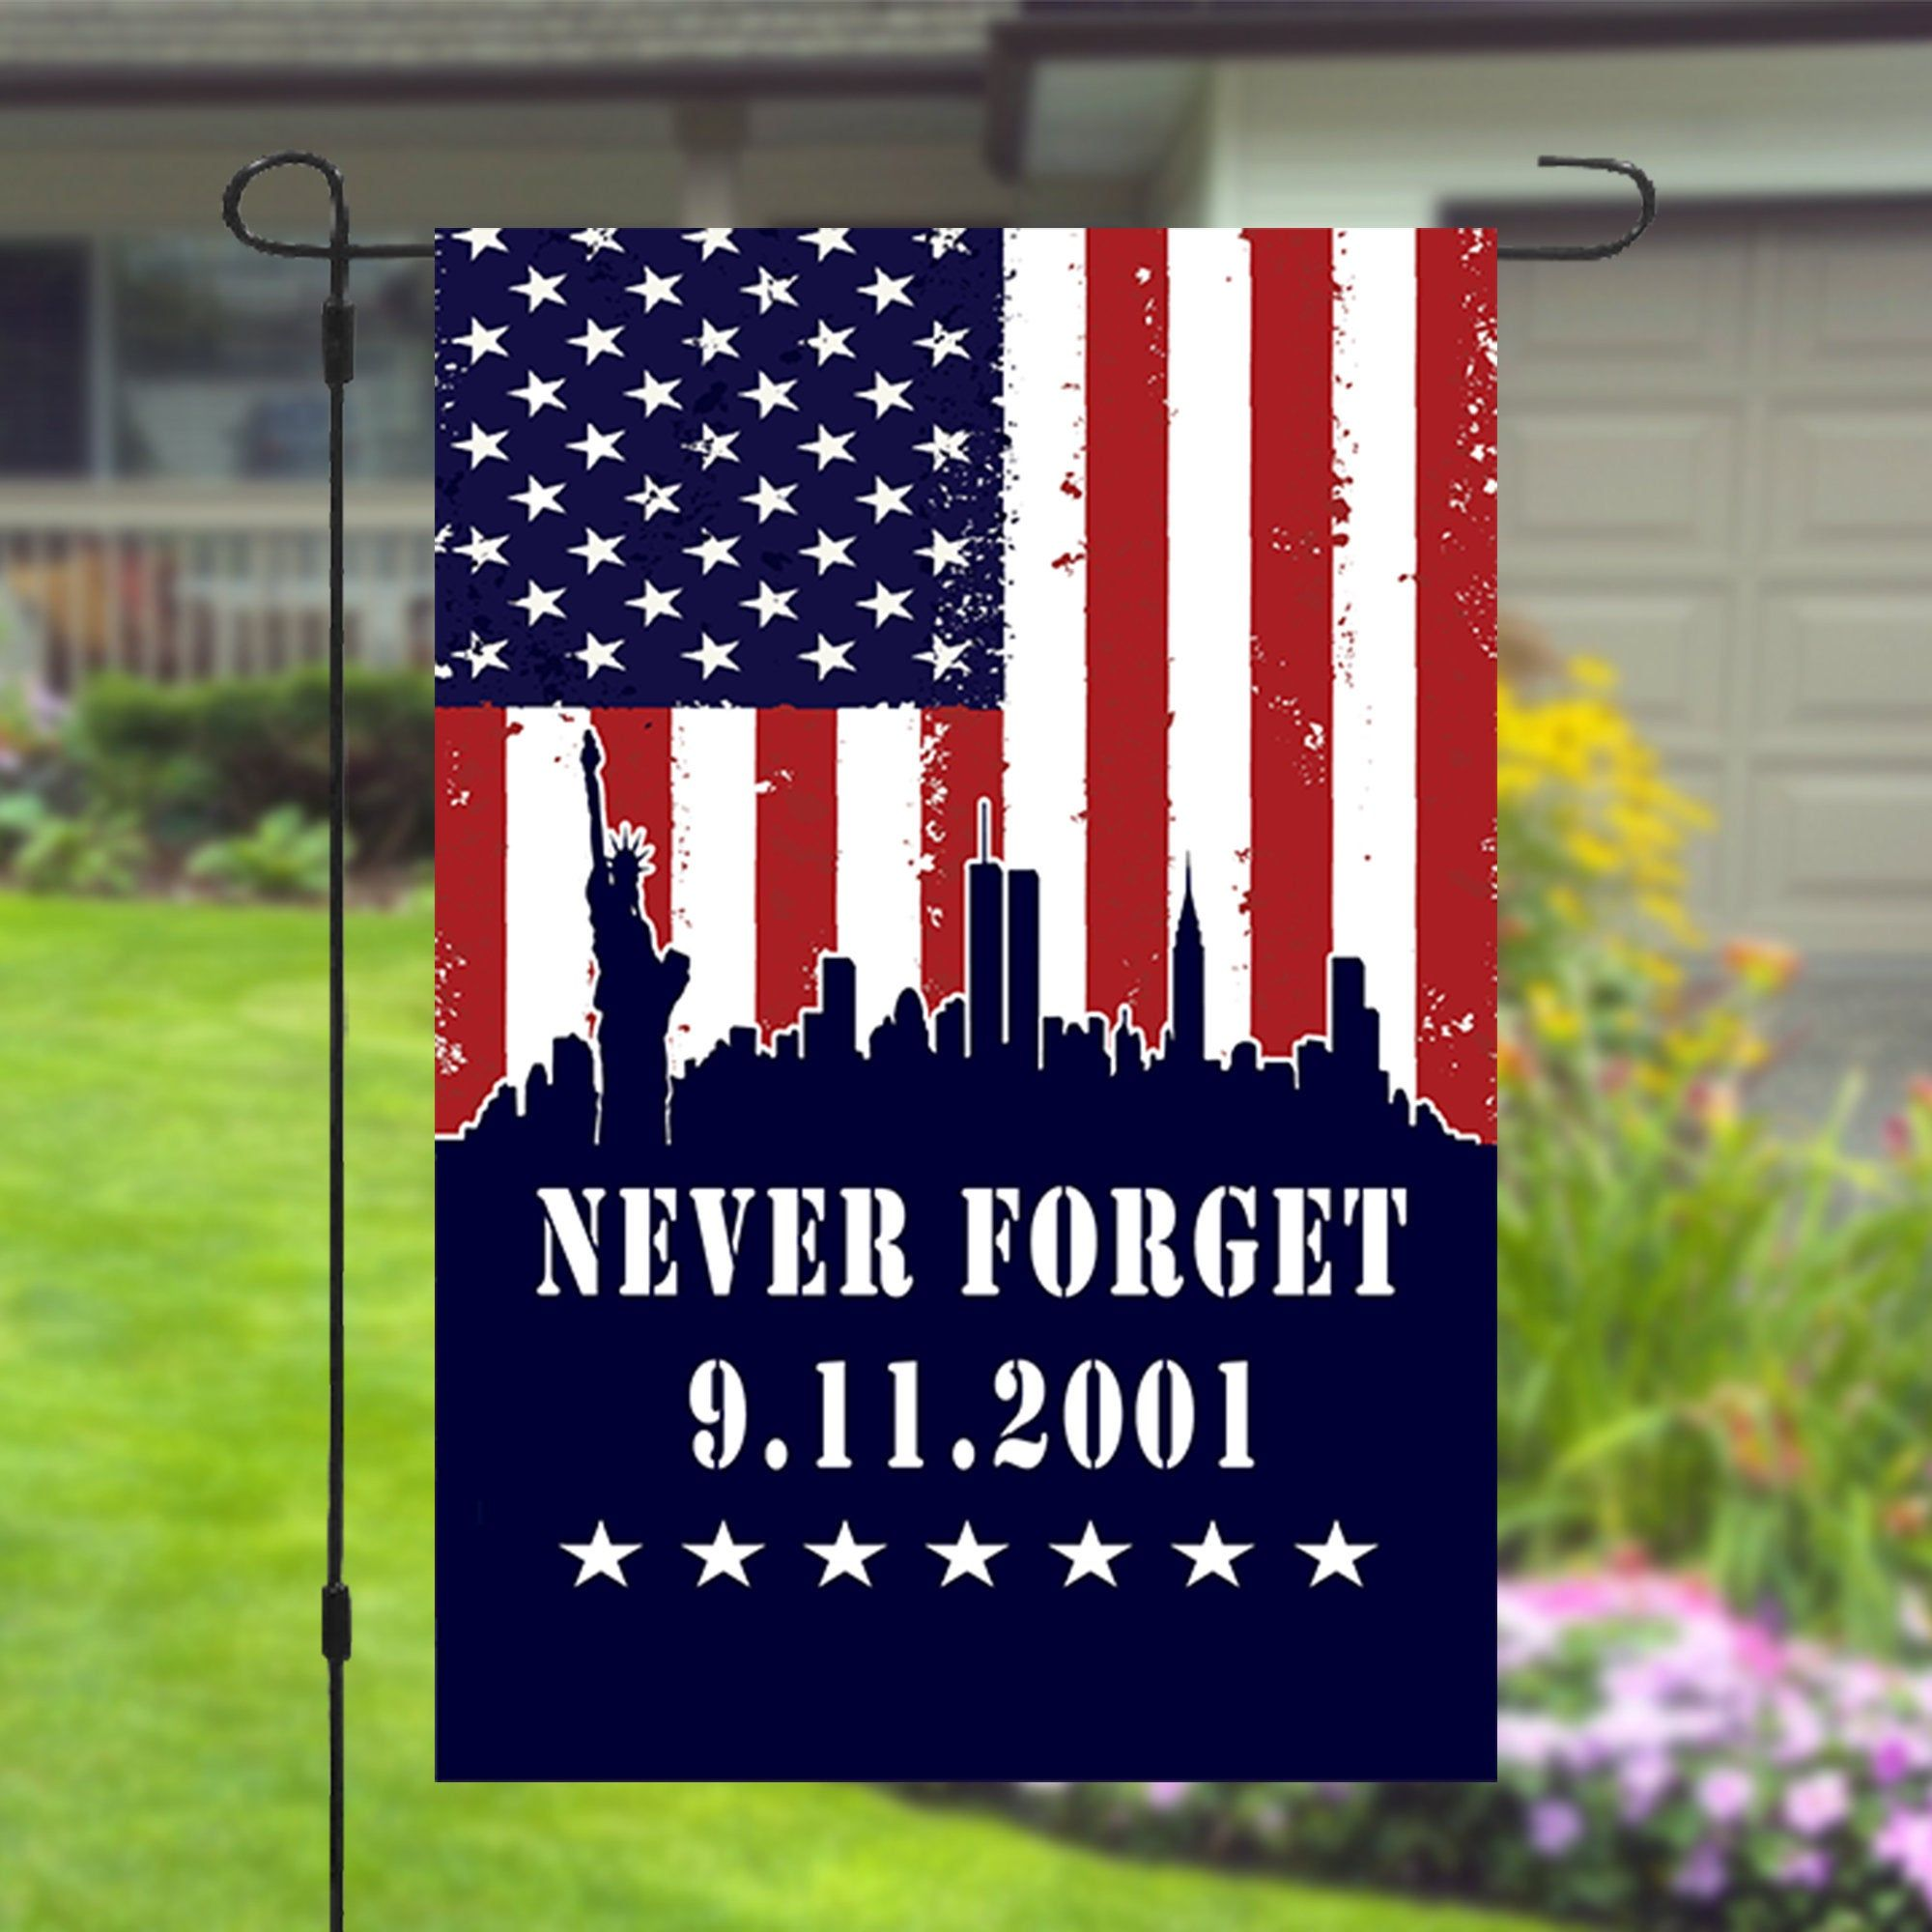 9 11 September 11 Patriots Day Never Forget Garden Banner Flag Etsy In 2020 Patriots Day House Flags Wall Banner